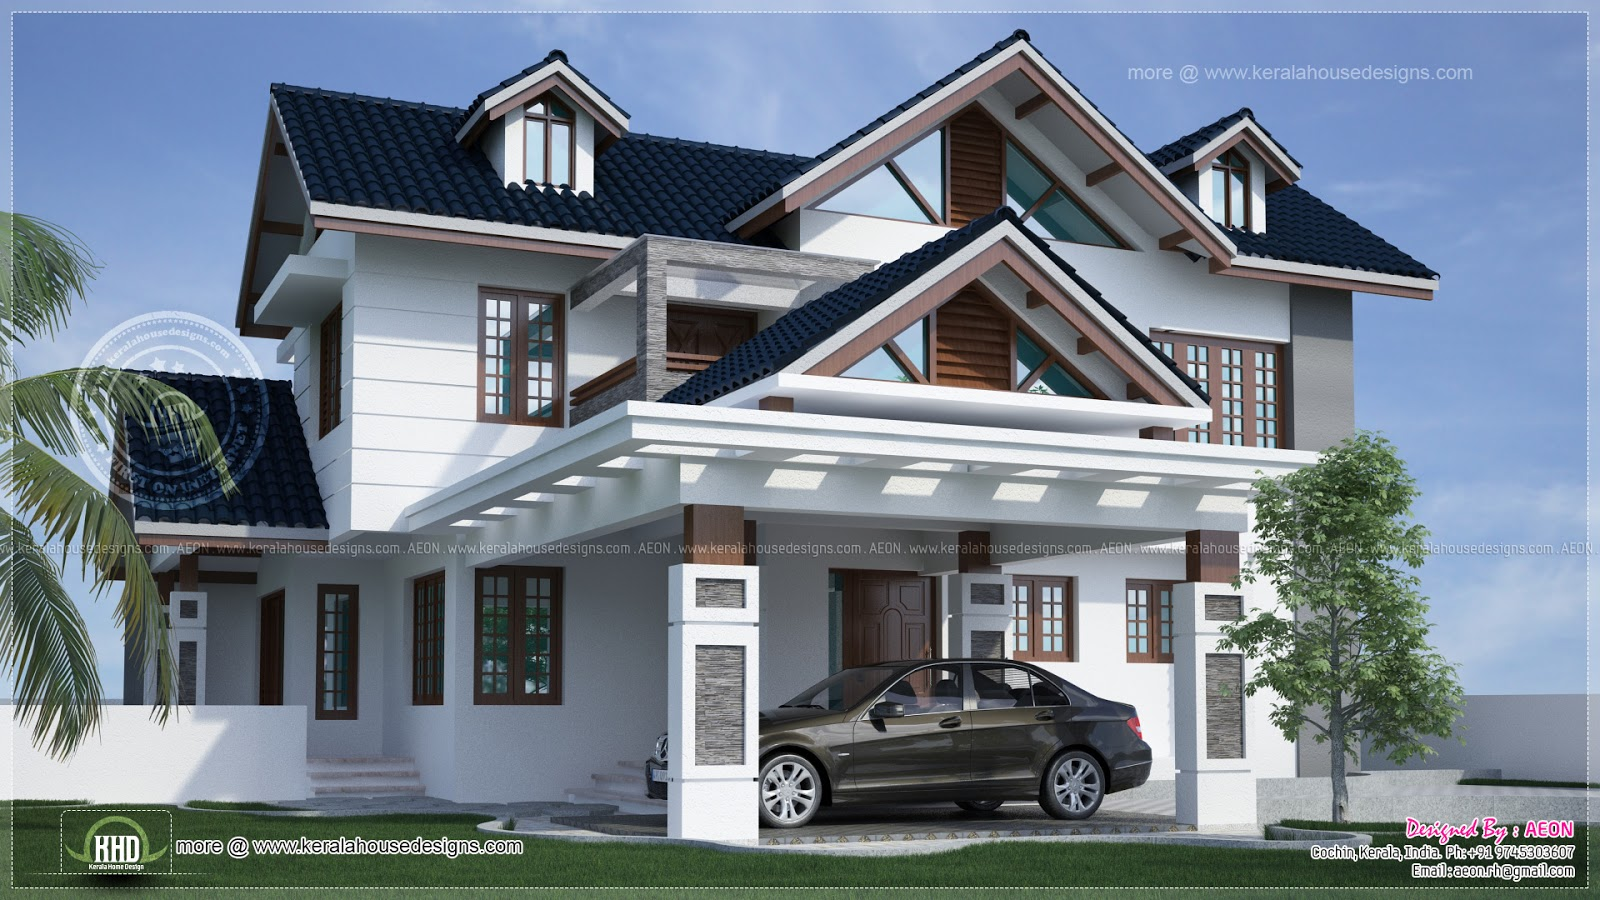 Kerala House Front Elevation Images : River side kerala style residence exterior design